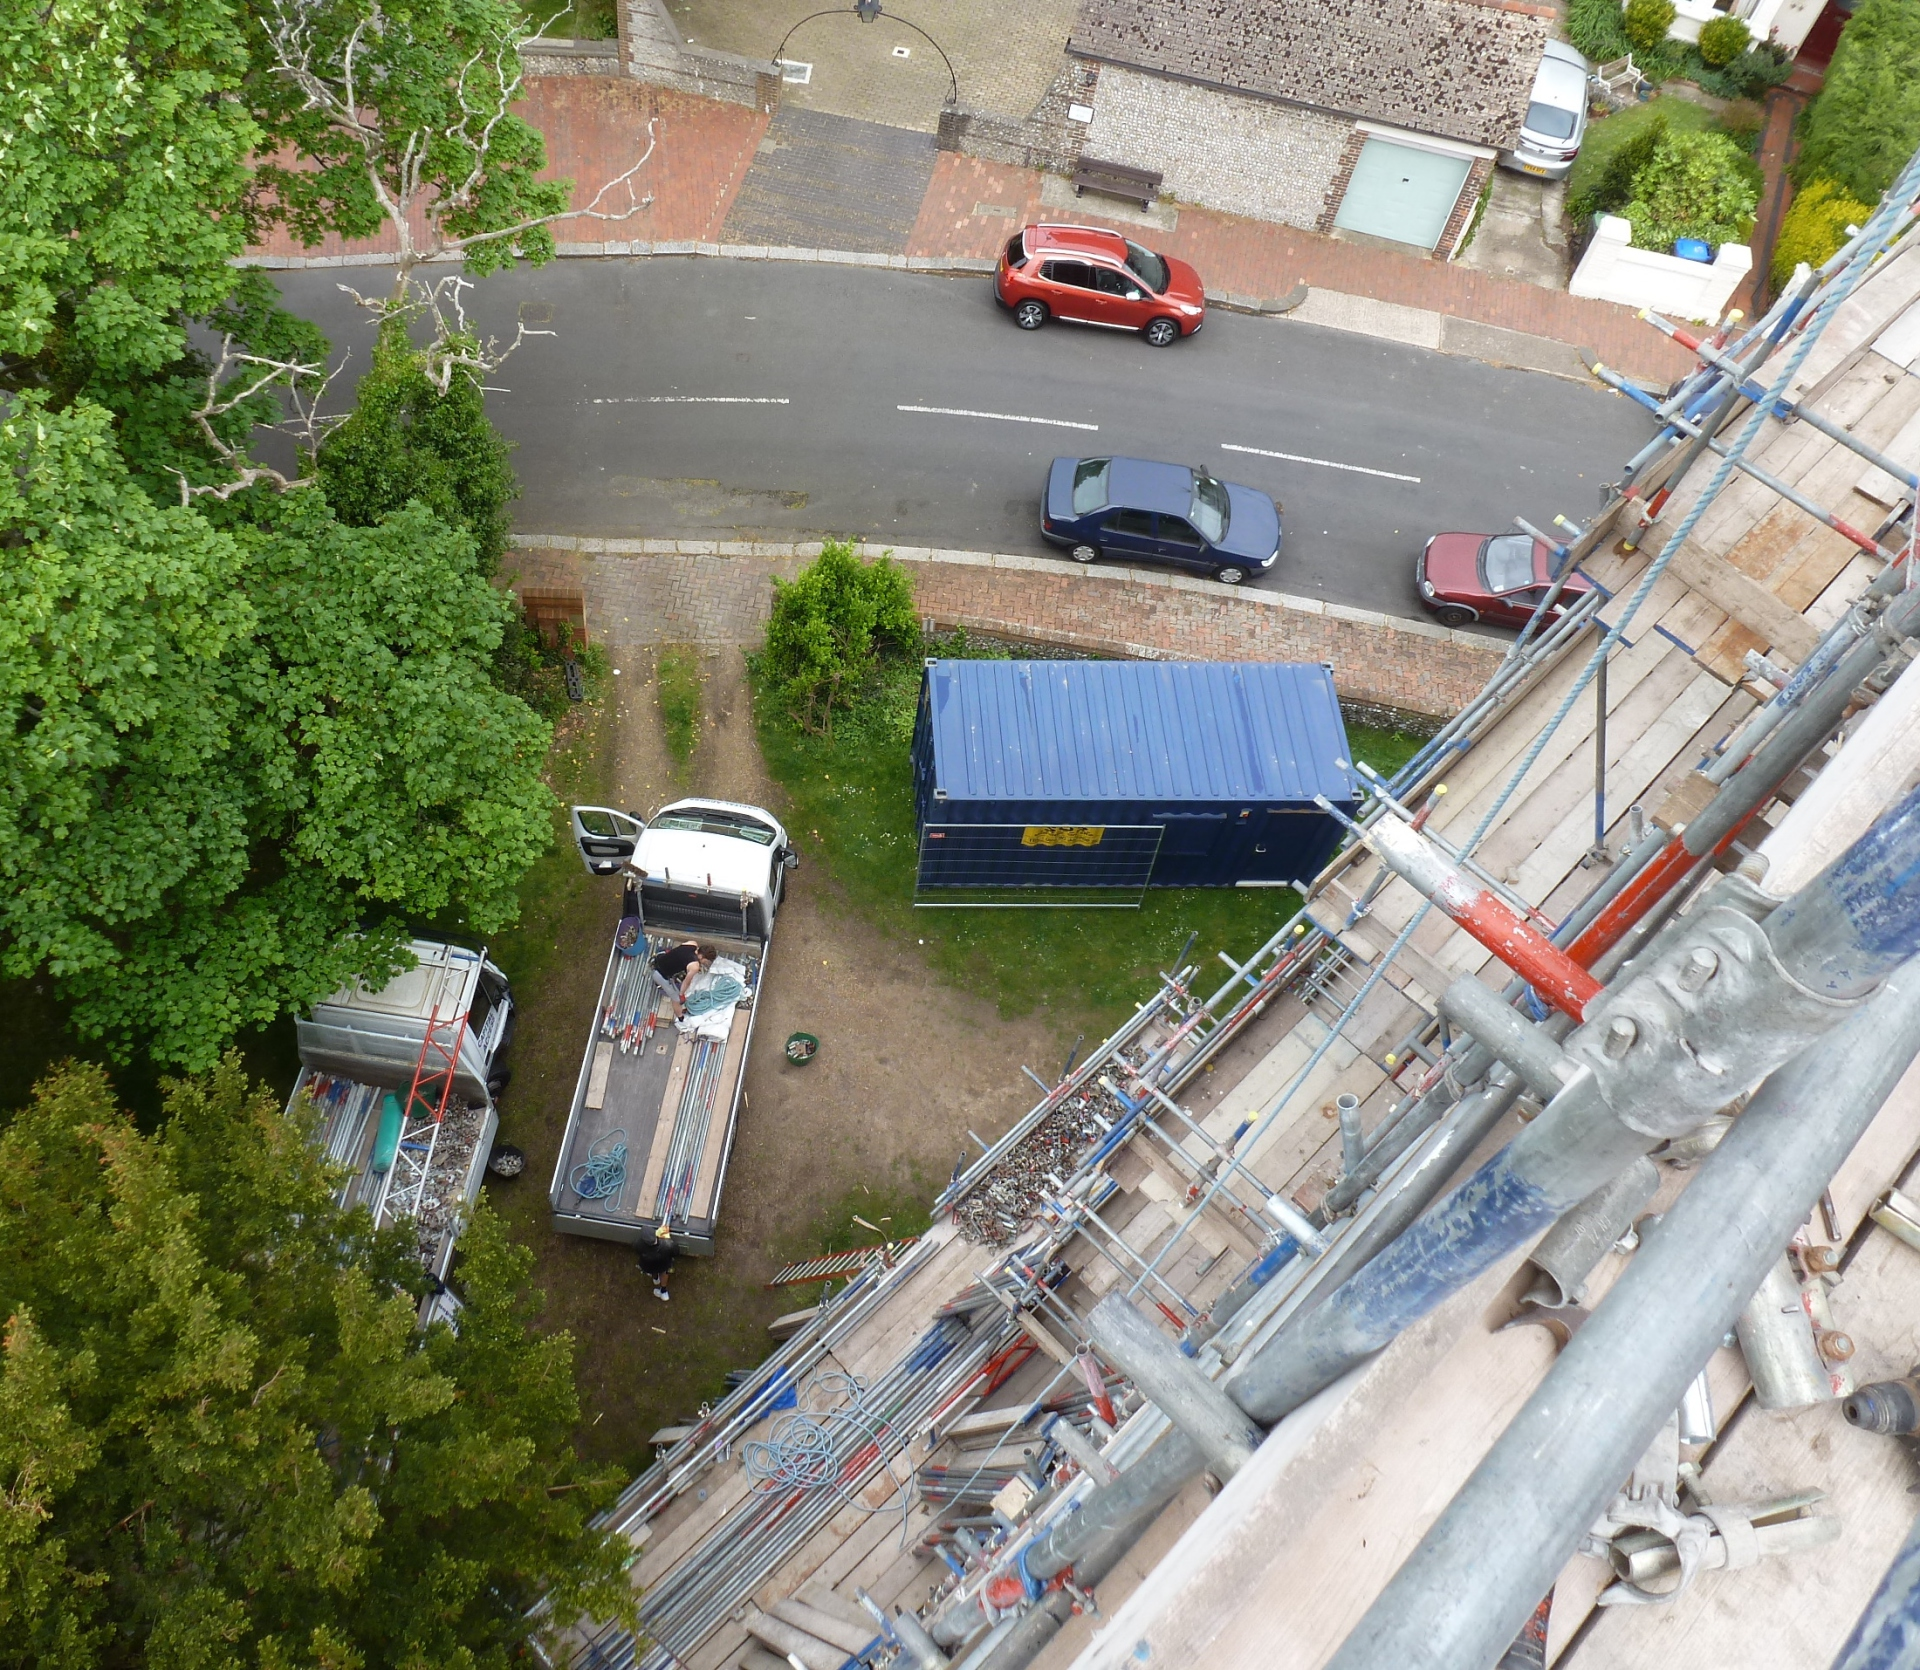 St. Botolph's, Heene view from scaffolding 21.5.16